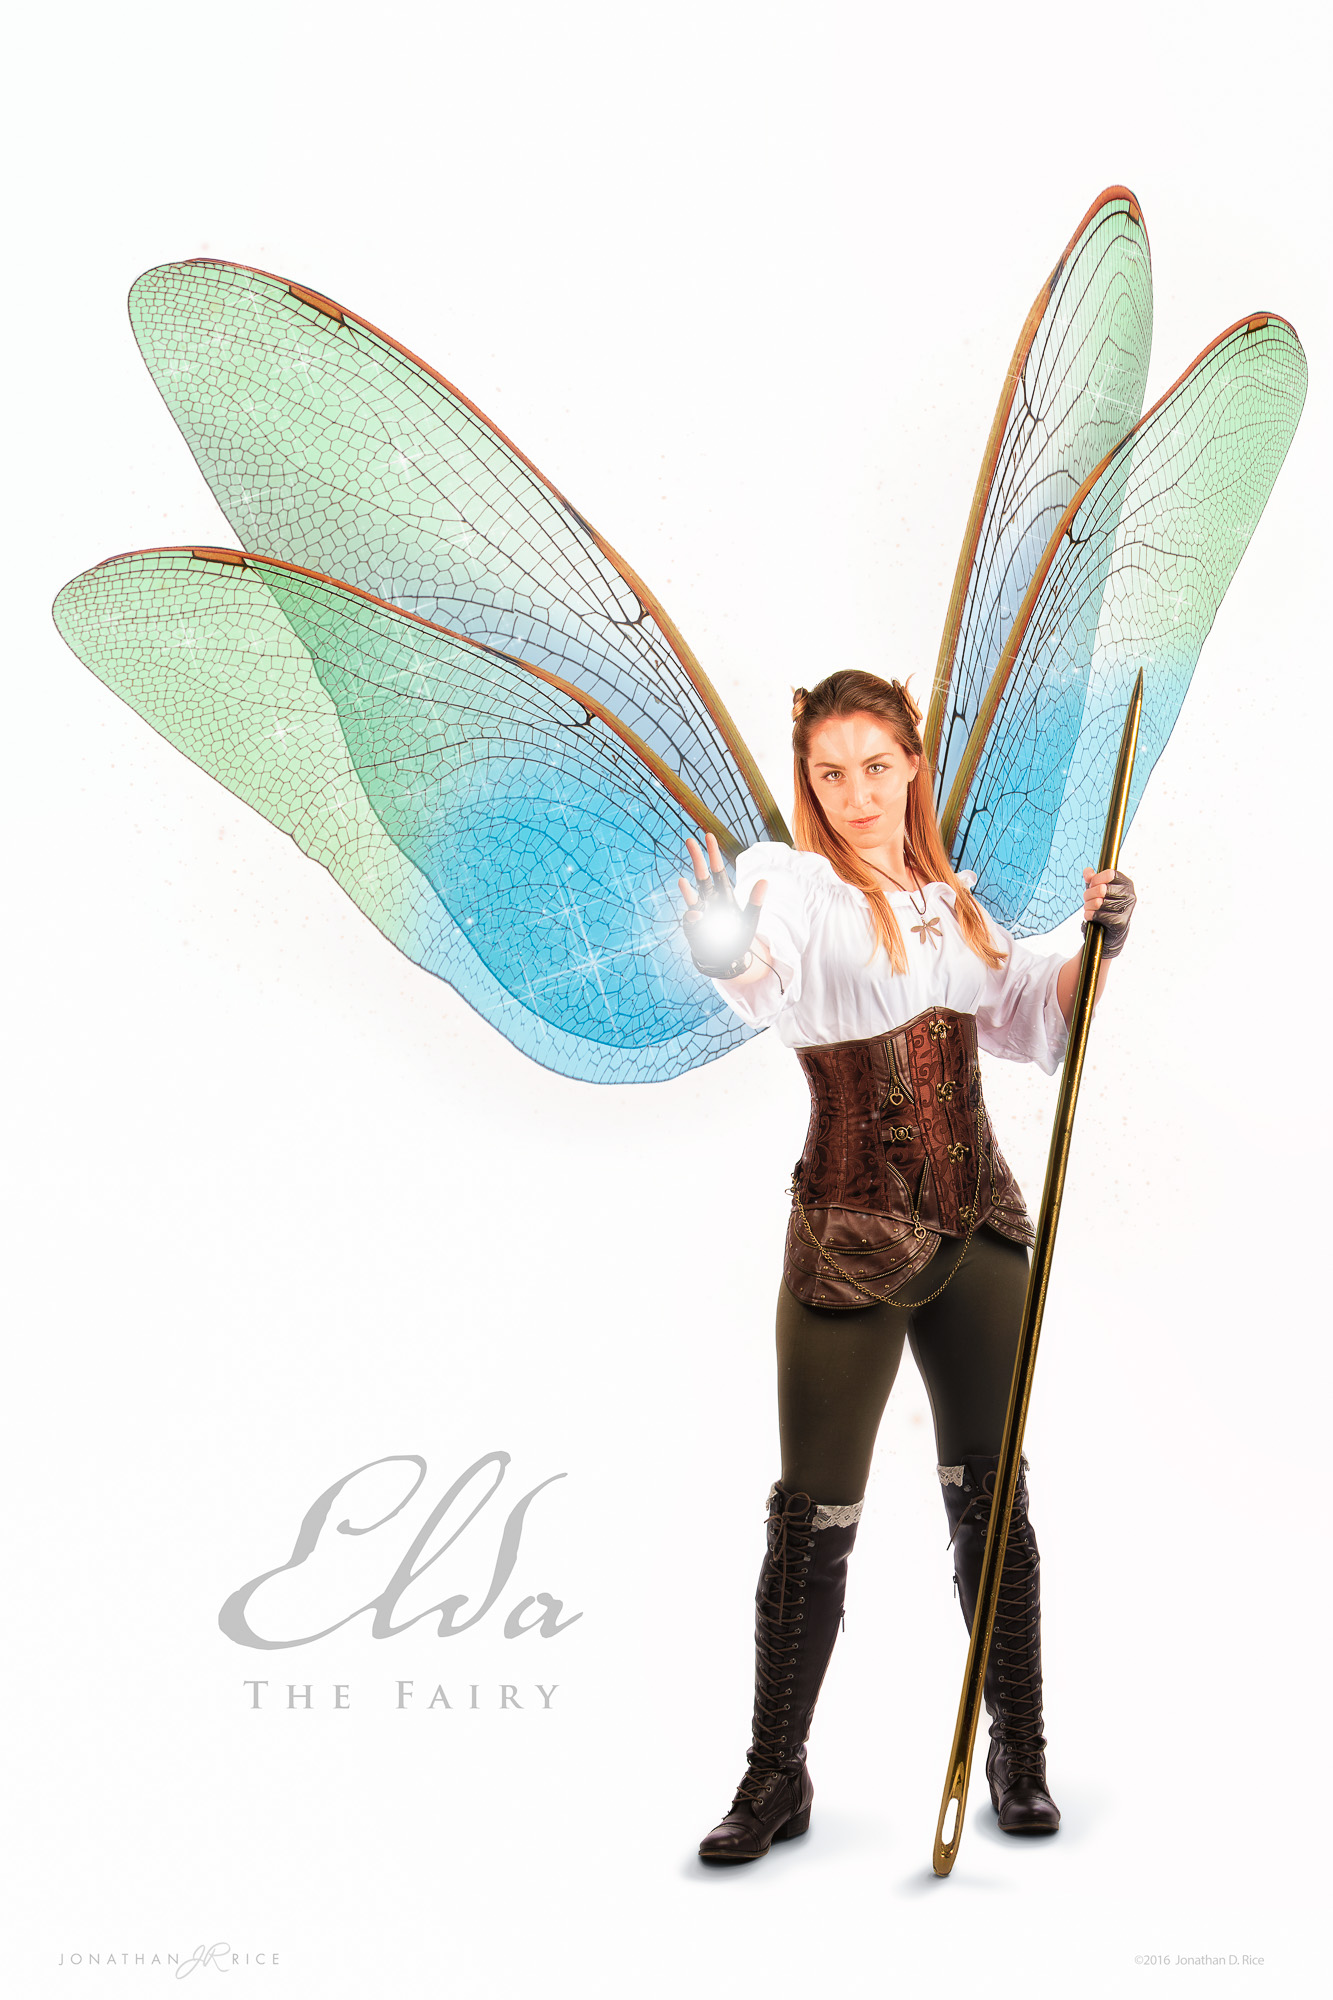 Elda the Fairy's Poster